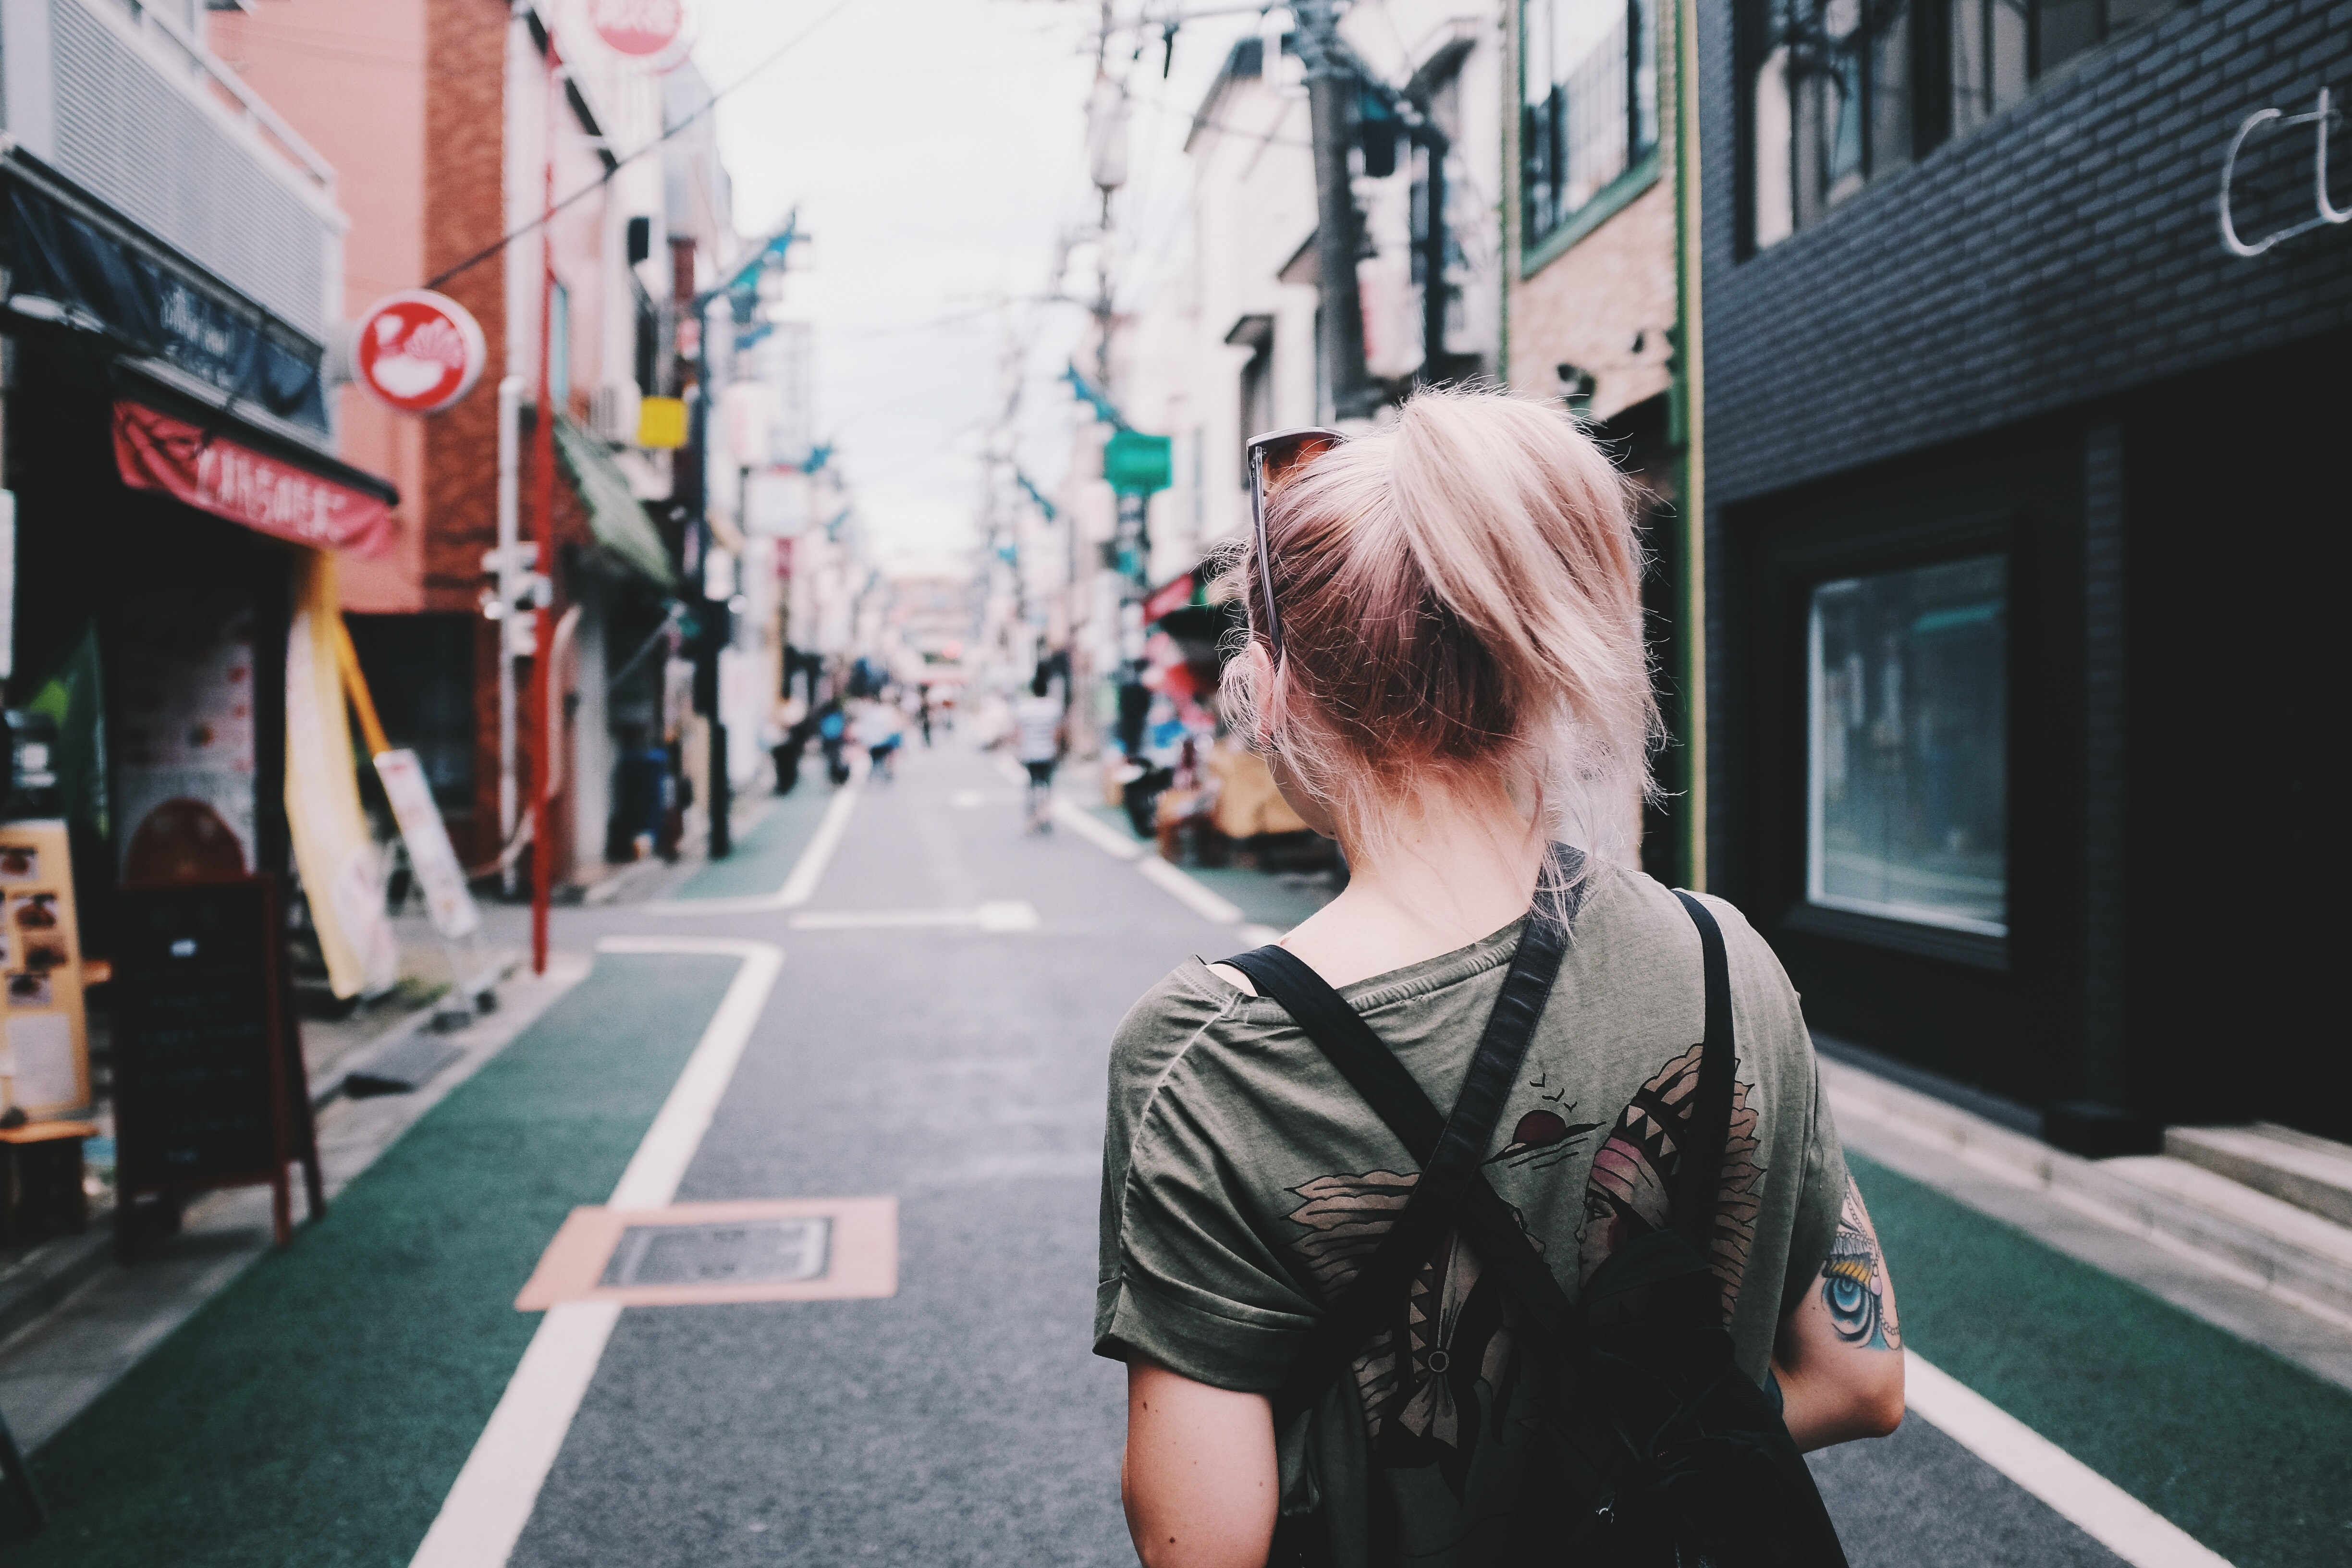 A woman in a ponytail and t-shirt walks down a street by shops in Shimo-kitazawa Station